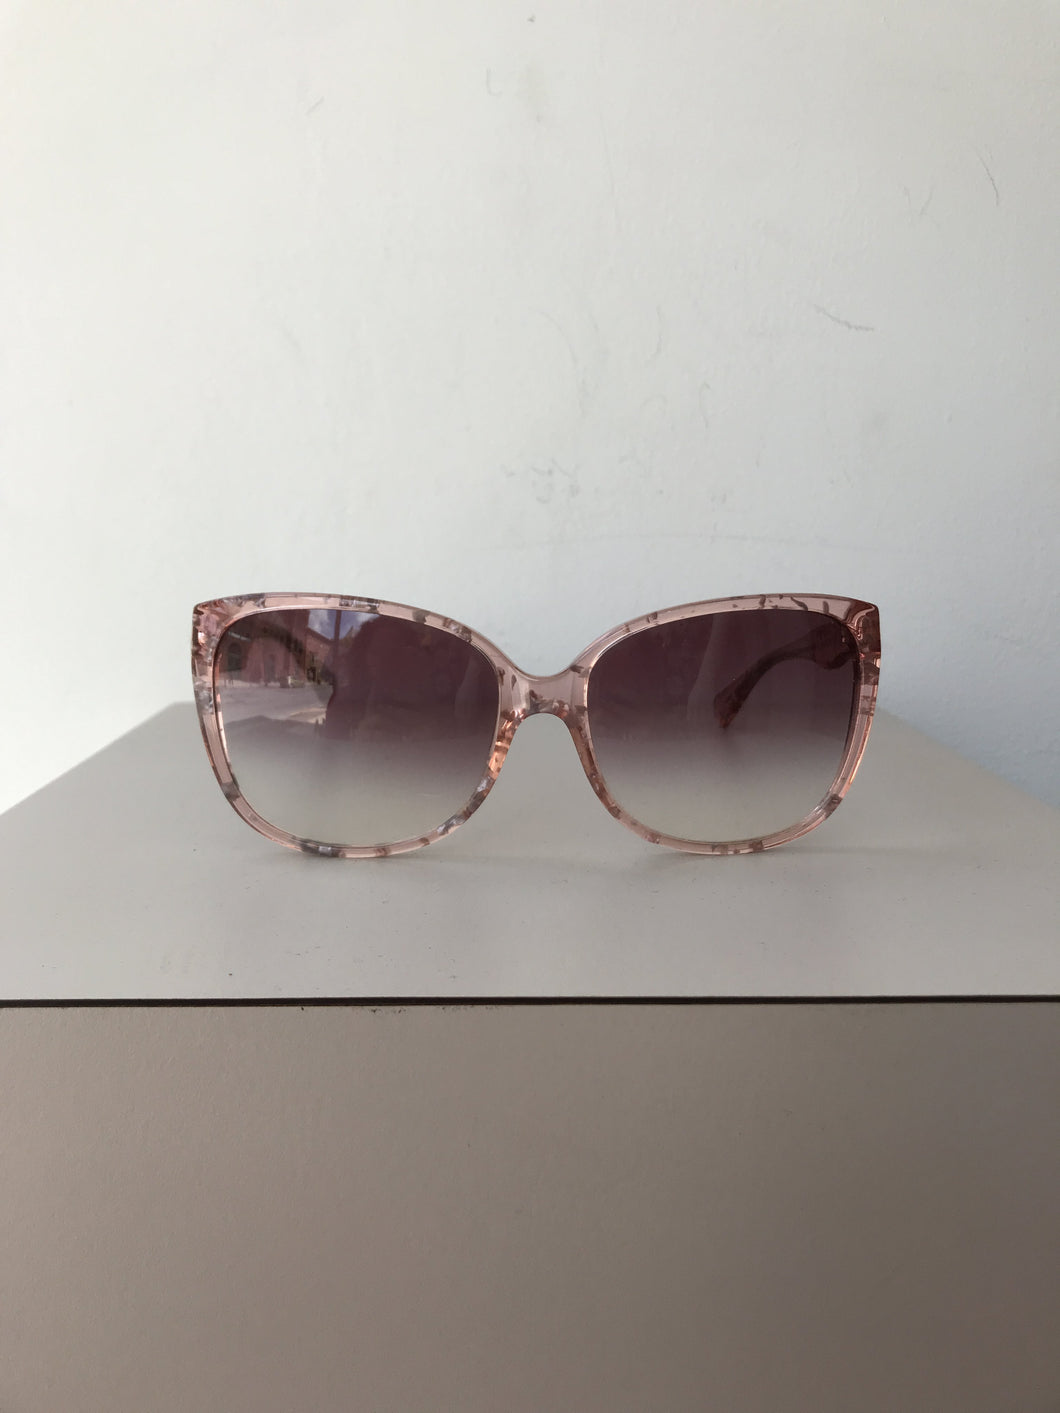 D&G pink sunglasses - My Girlfriend's Wardrobe York Pa